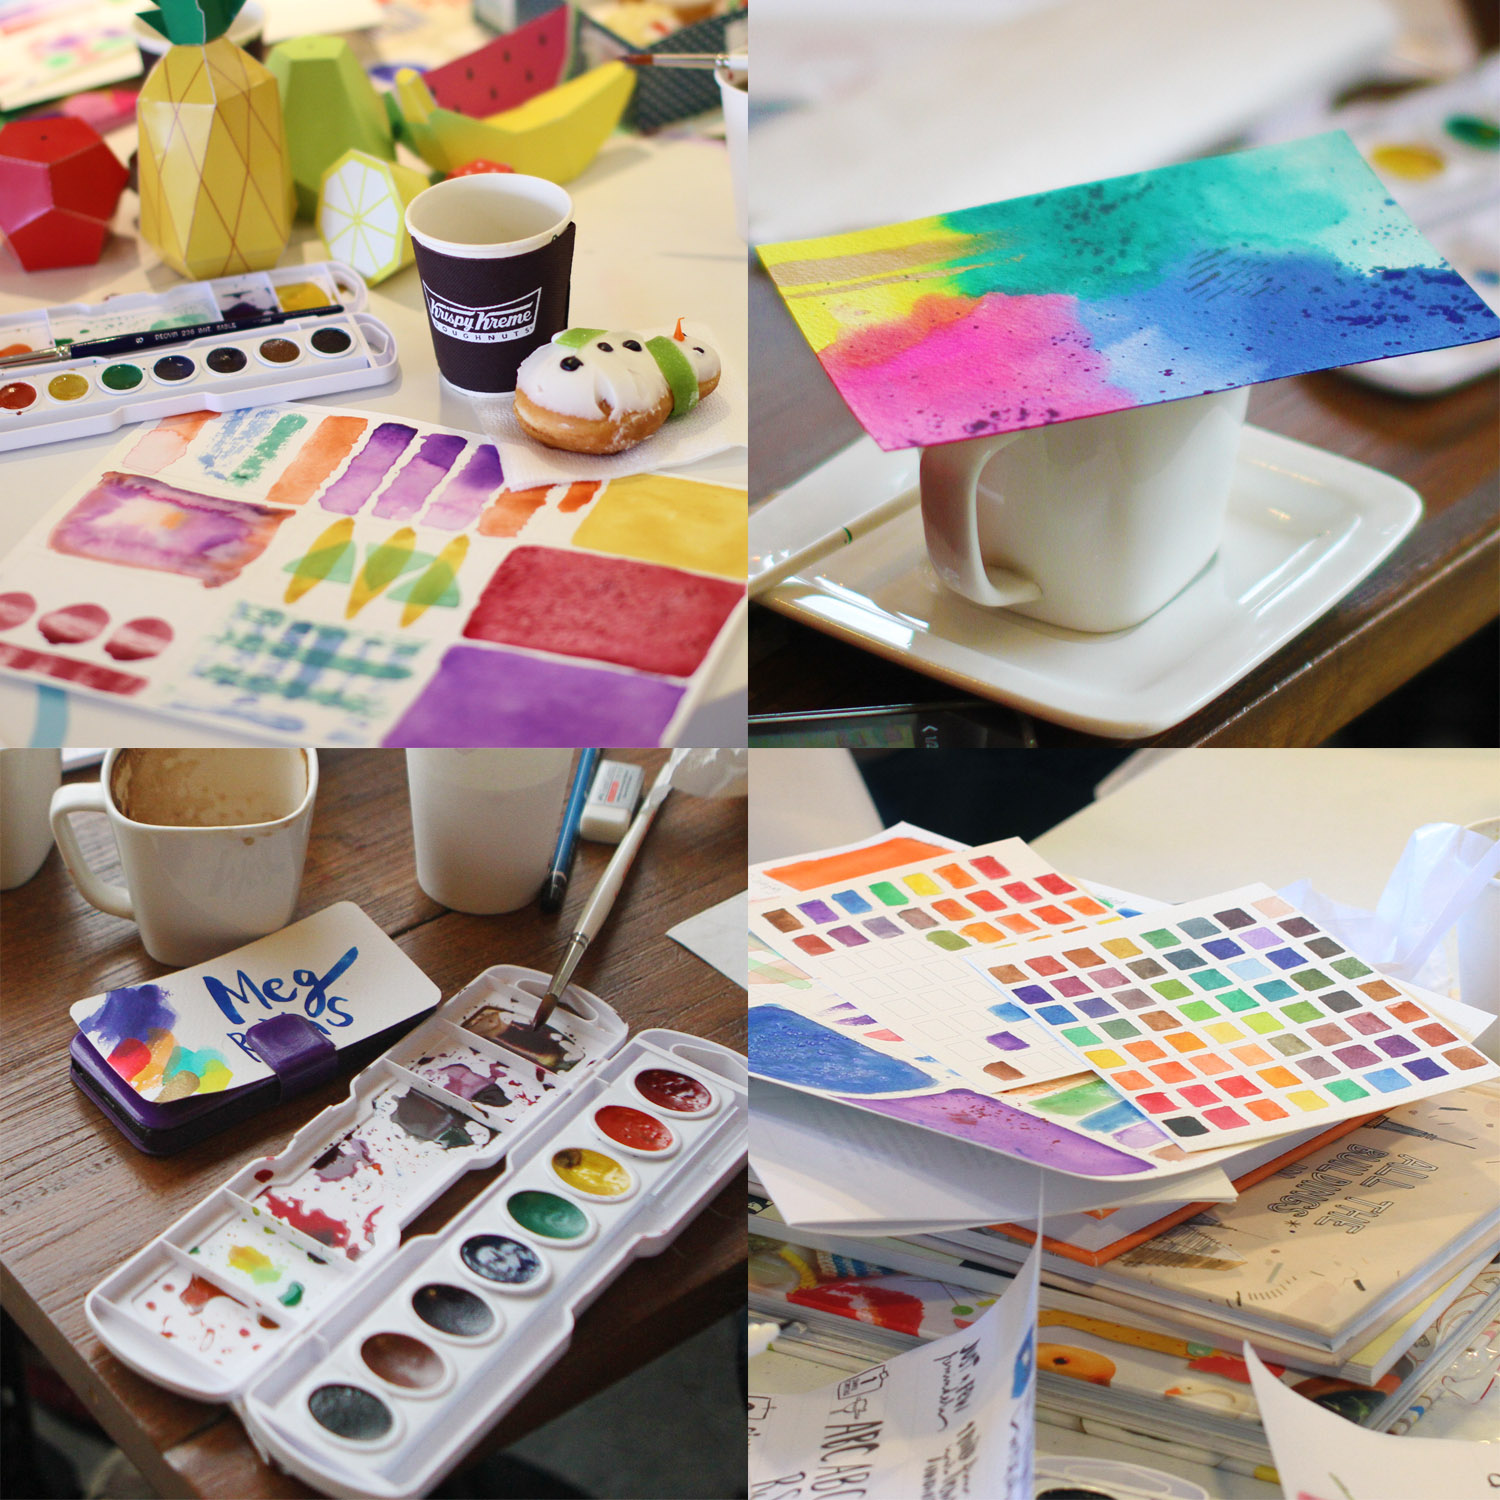 Watercolor & Lettering Workshops: A Photo Diary